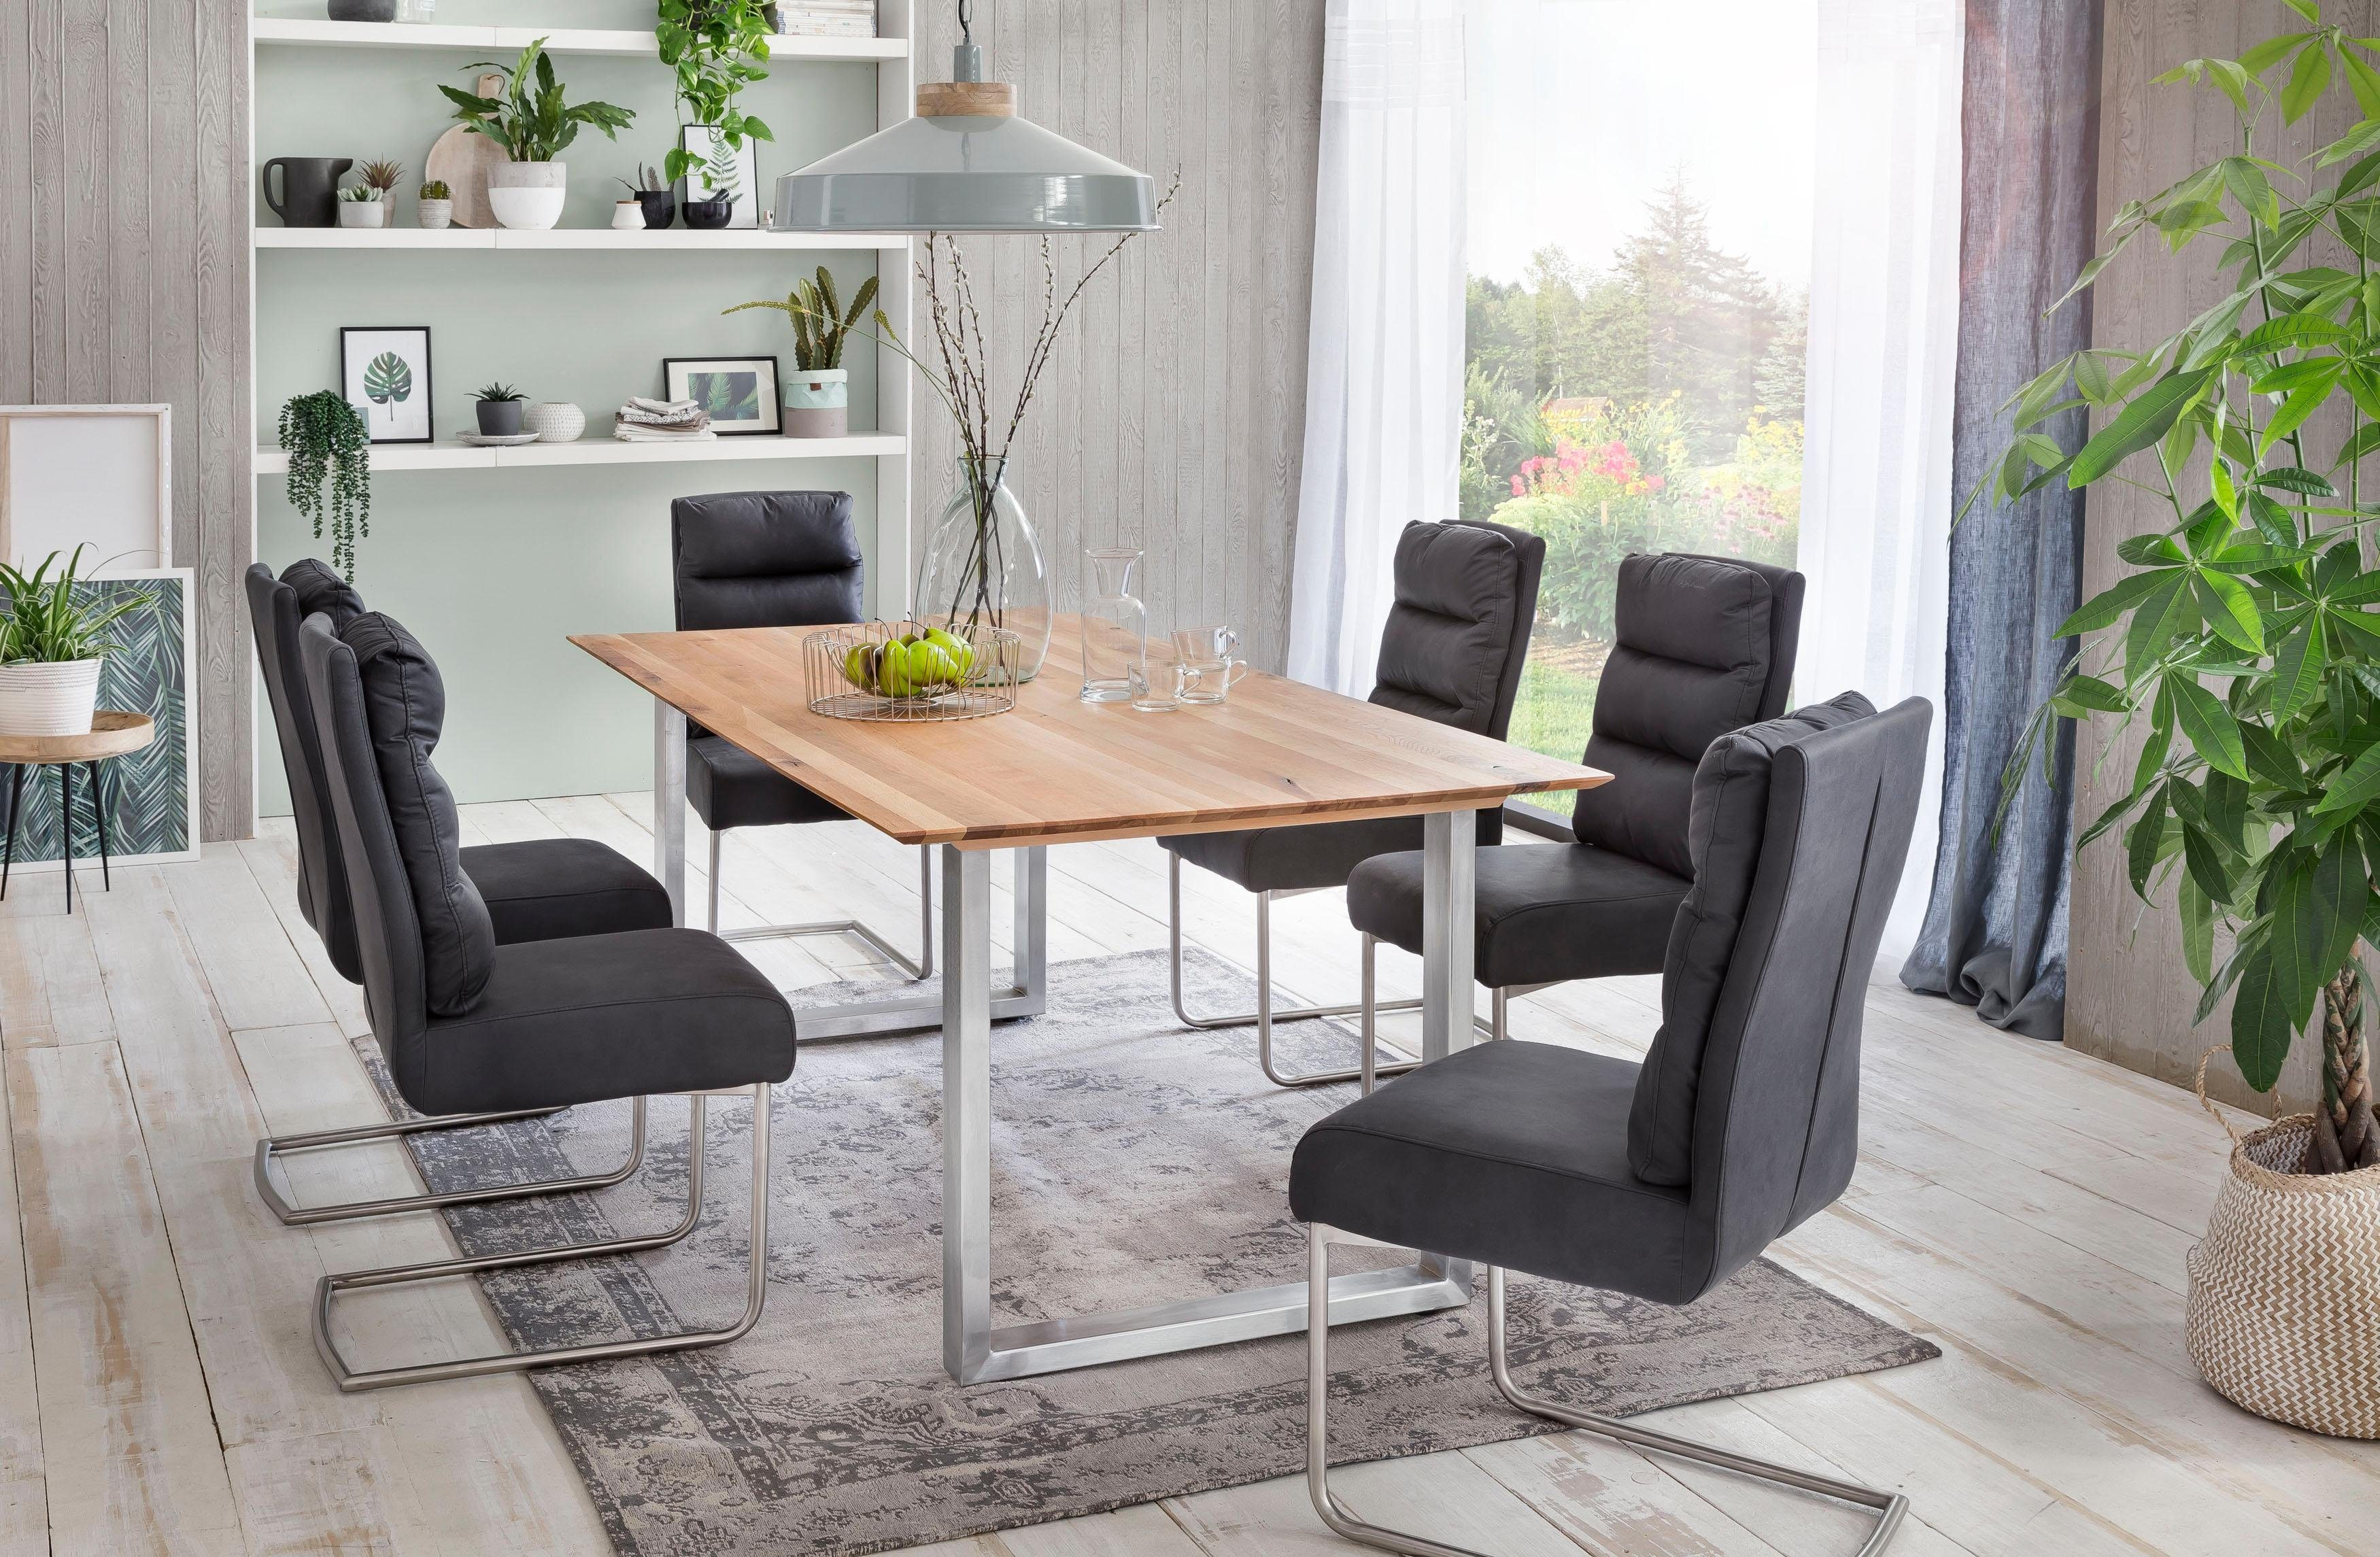 Premium Collection By Home Affaire Couchtisch Premium Collection By Home Affaire Eettafel »montreal« In ...